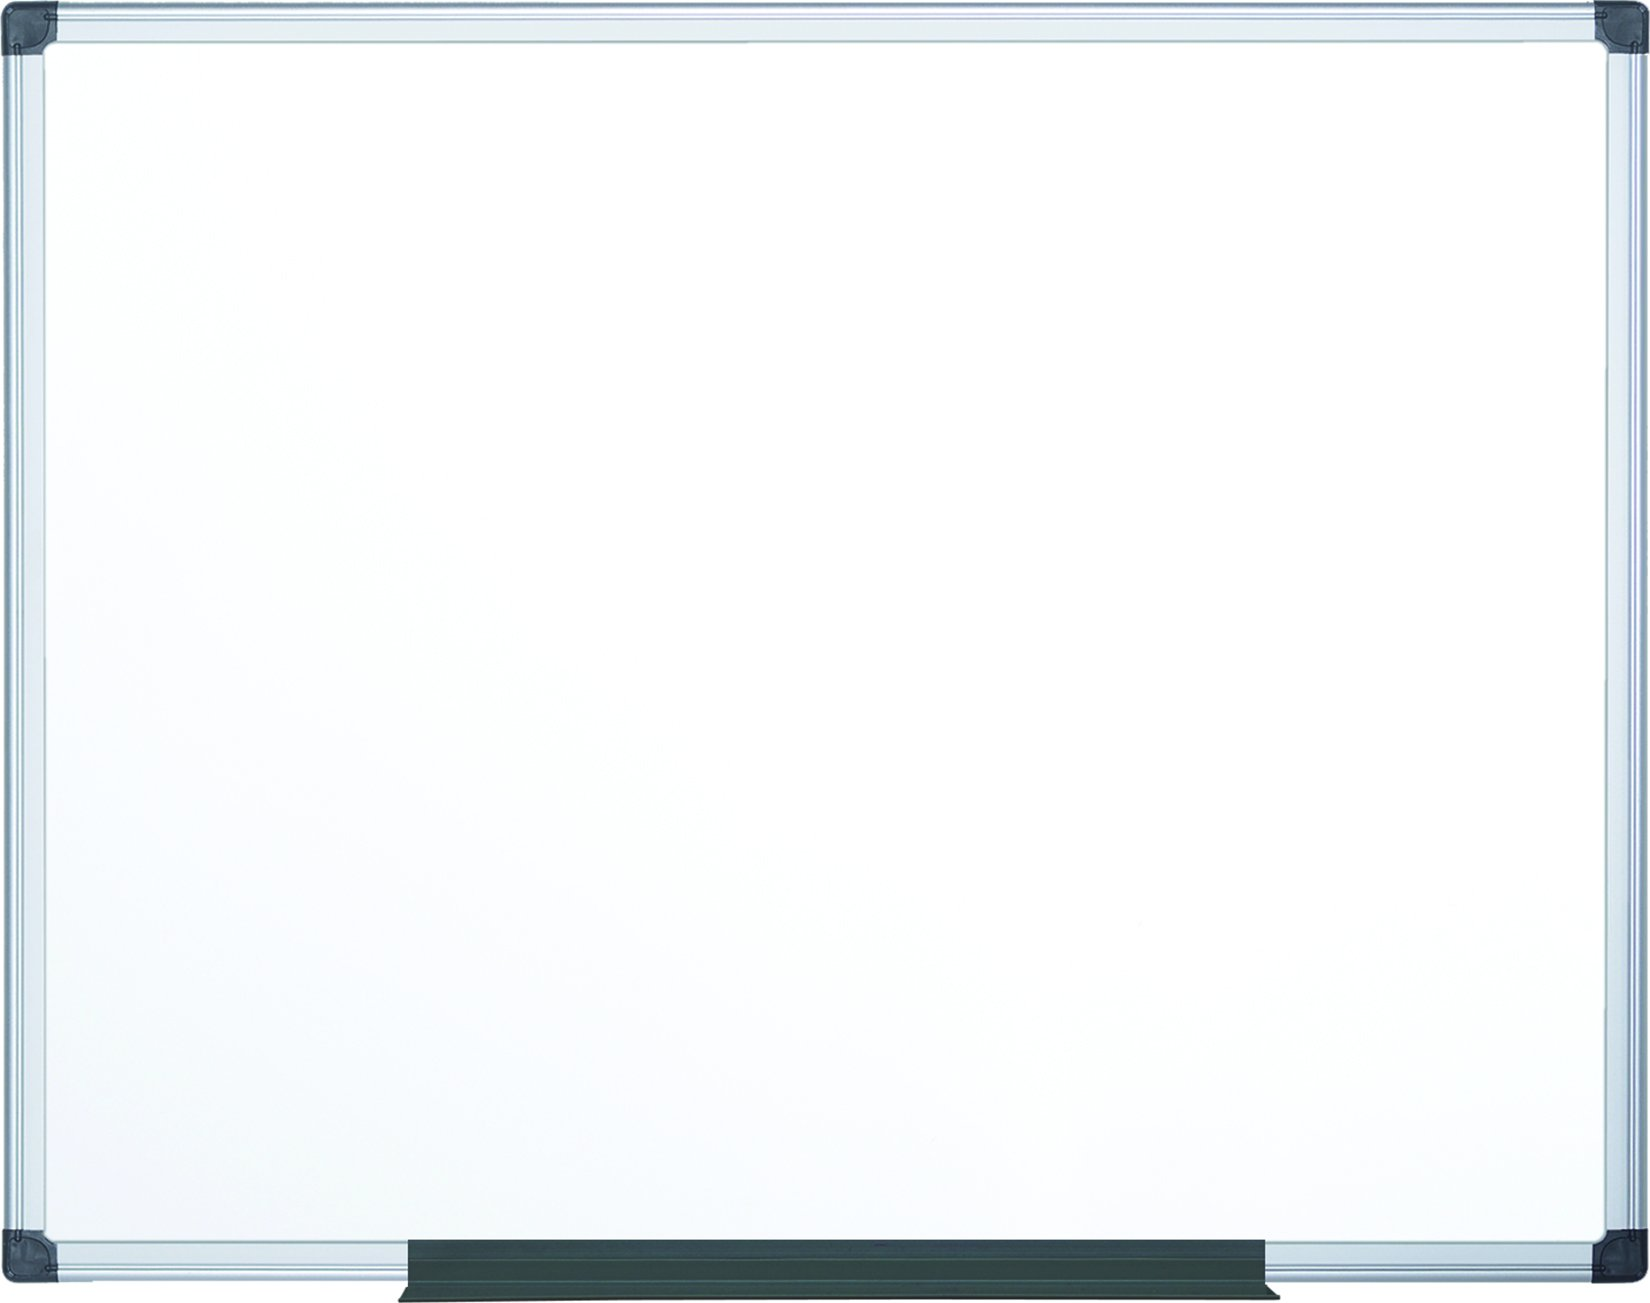 MasterVision Maya Magnetic Lacquered Steel Dry Erase Board, 4' x 6', Whiteboard with Silver Frame (MA2707170)